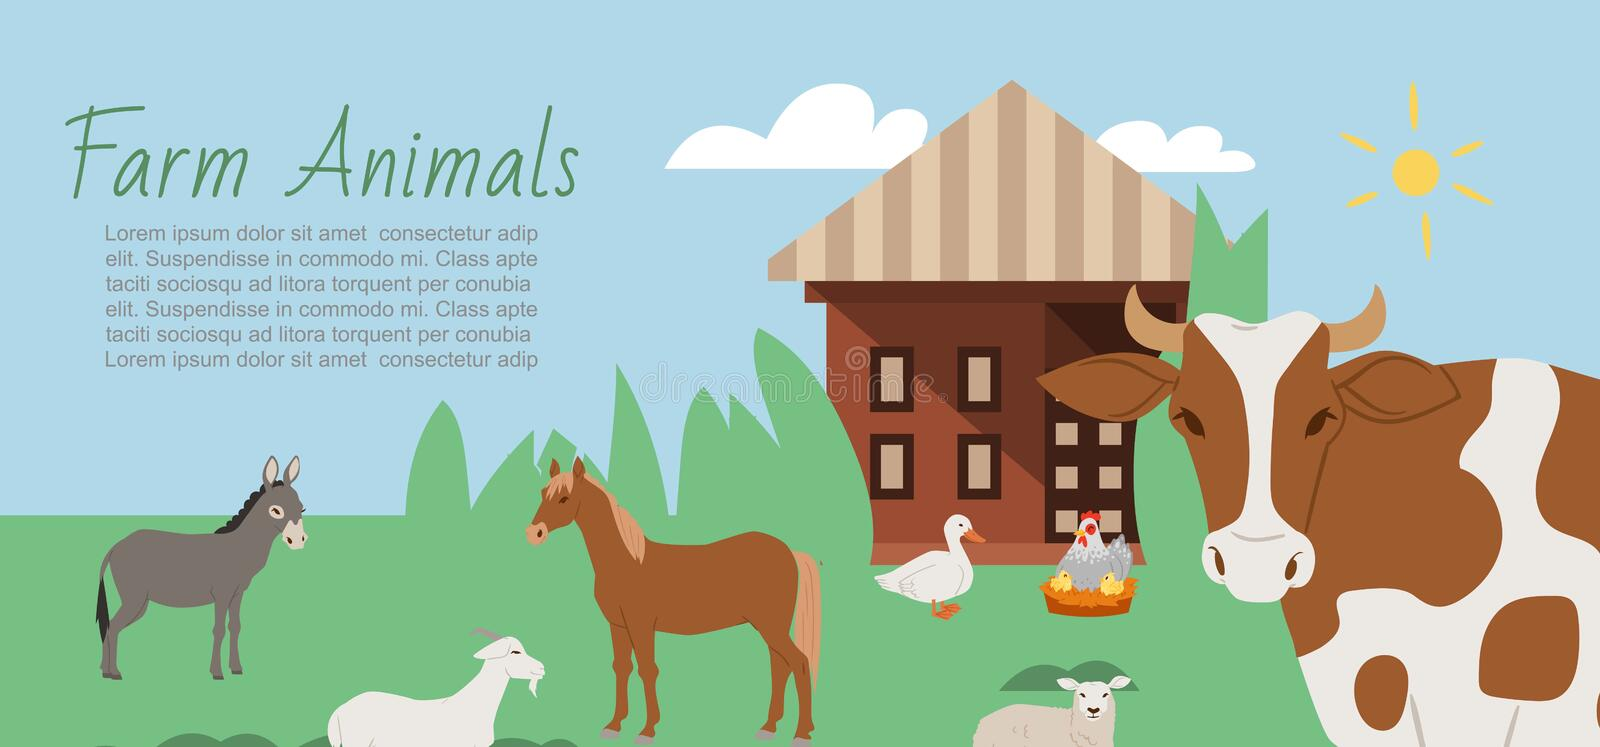 Farm animals and rural landscape background vector illustration. Cartoon cow, horse, goat with donkey and duck with stock illustration